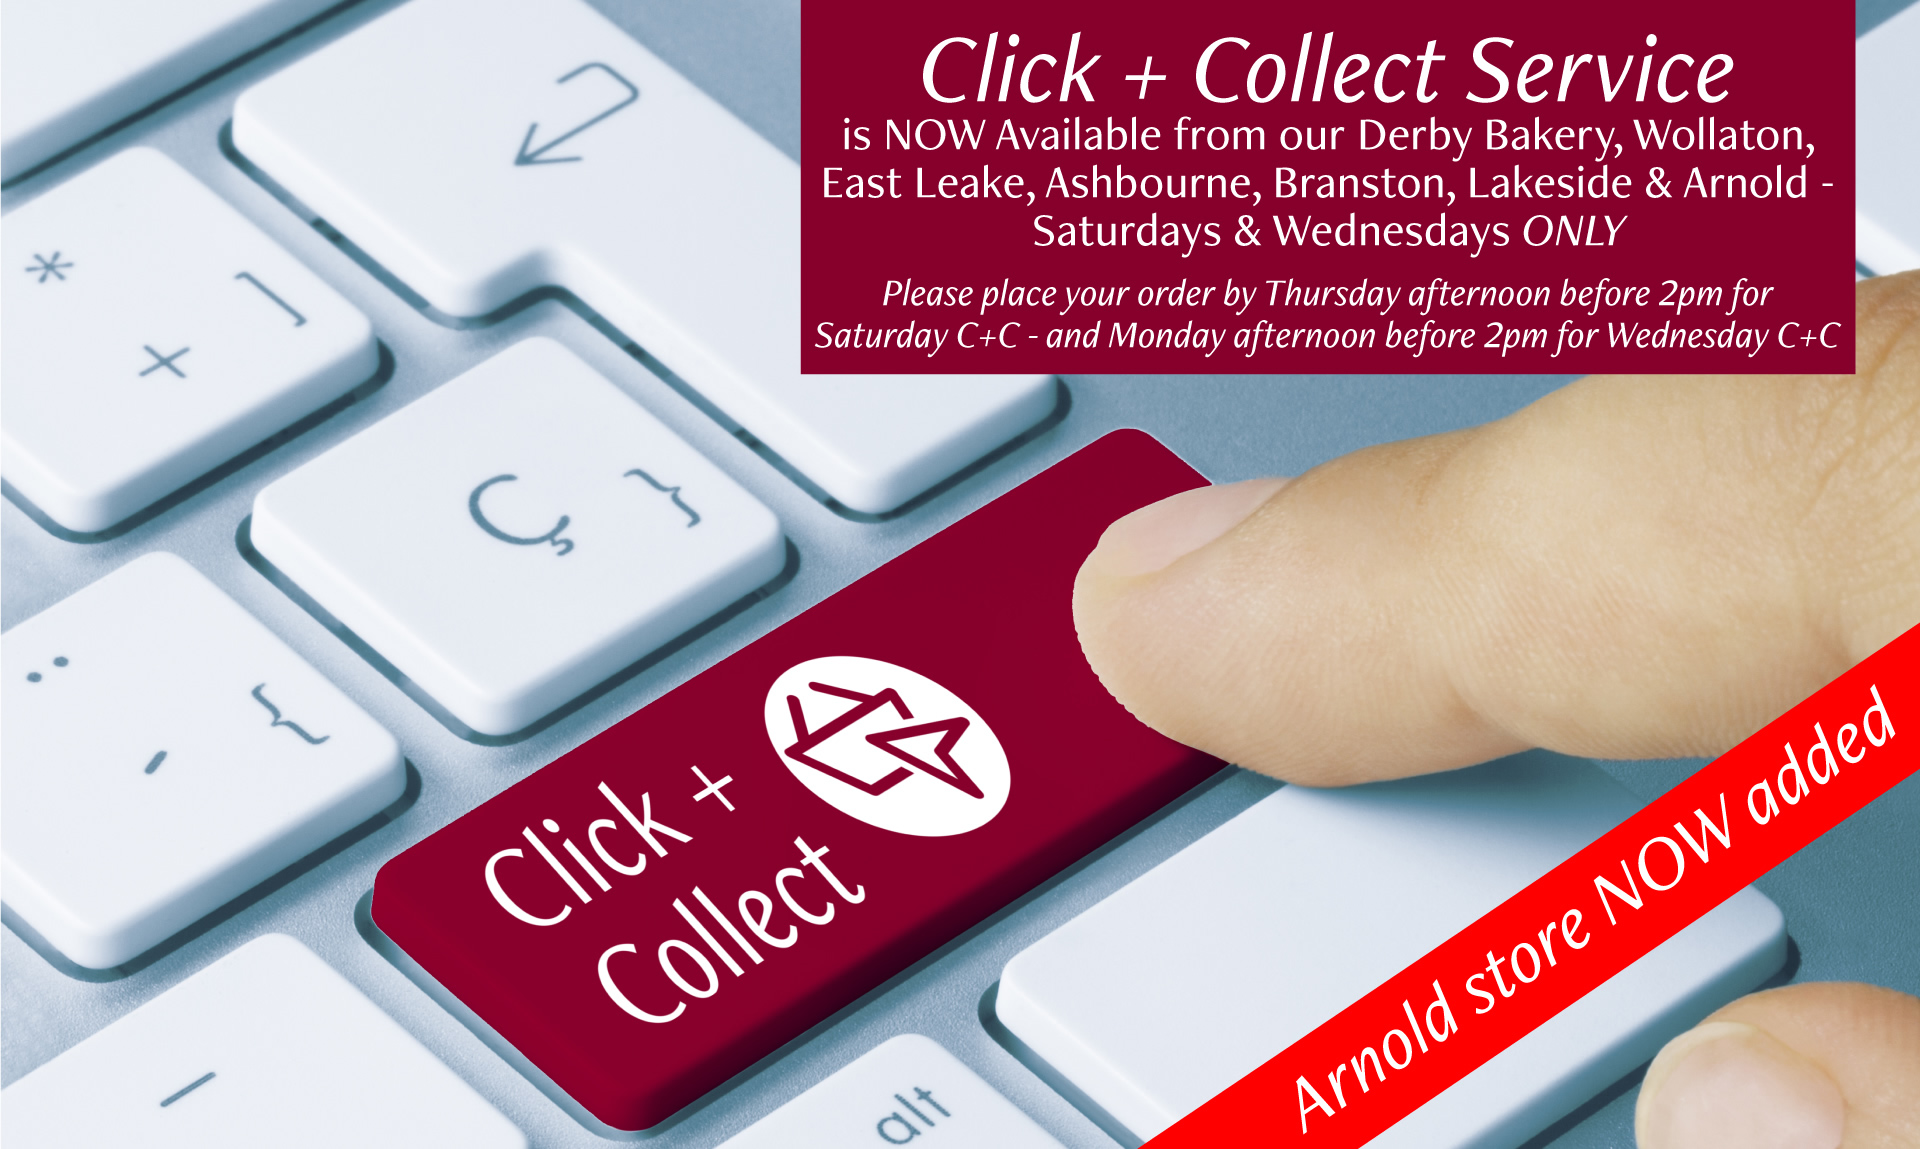 Click + Collect Service is now available from our Derby Bakery, Wollaton, East Leake, Ashbourne, Branston, Lakeside and Arnold - Saturdays and Wednesdays Only. Please place your order by Thursday afternoon before 2pm for Saturday C+C and Monday afternoon before 2pm for Wednesday C+C